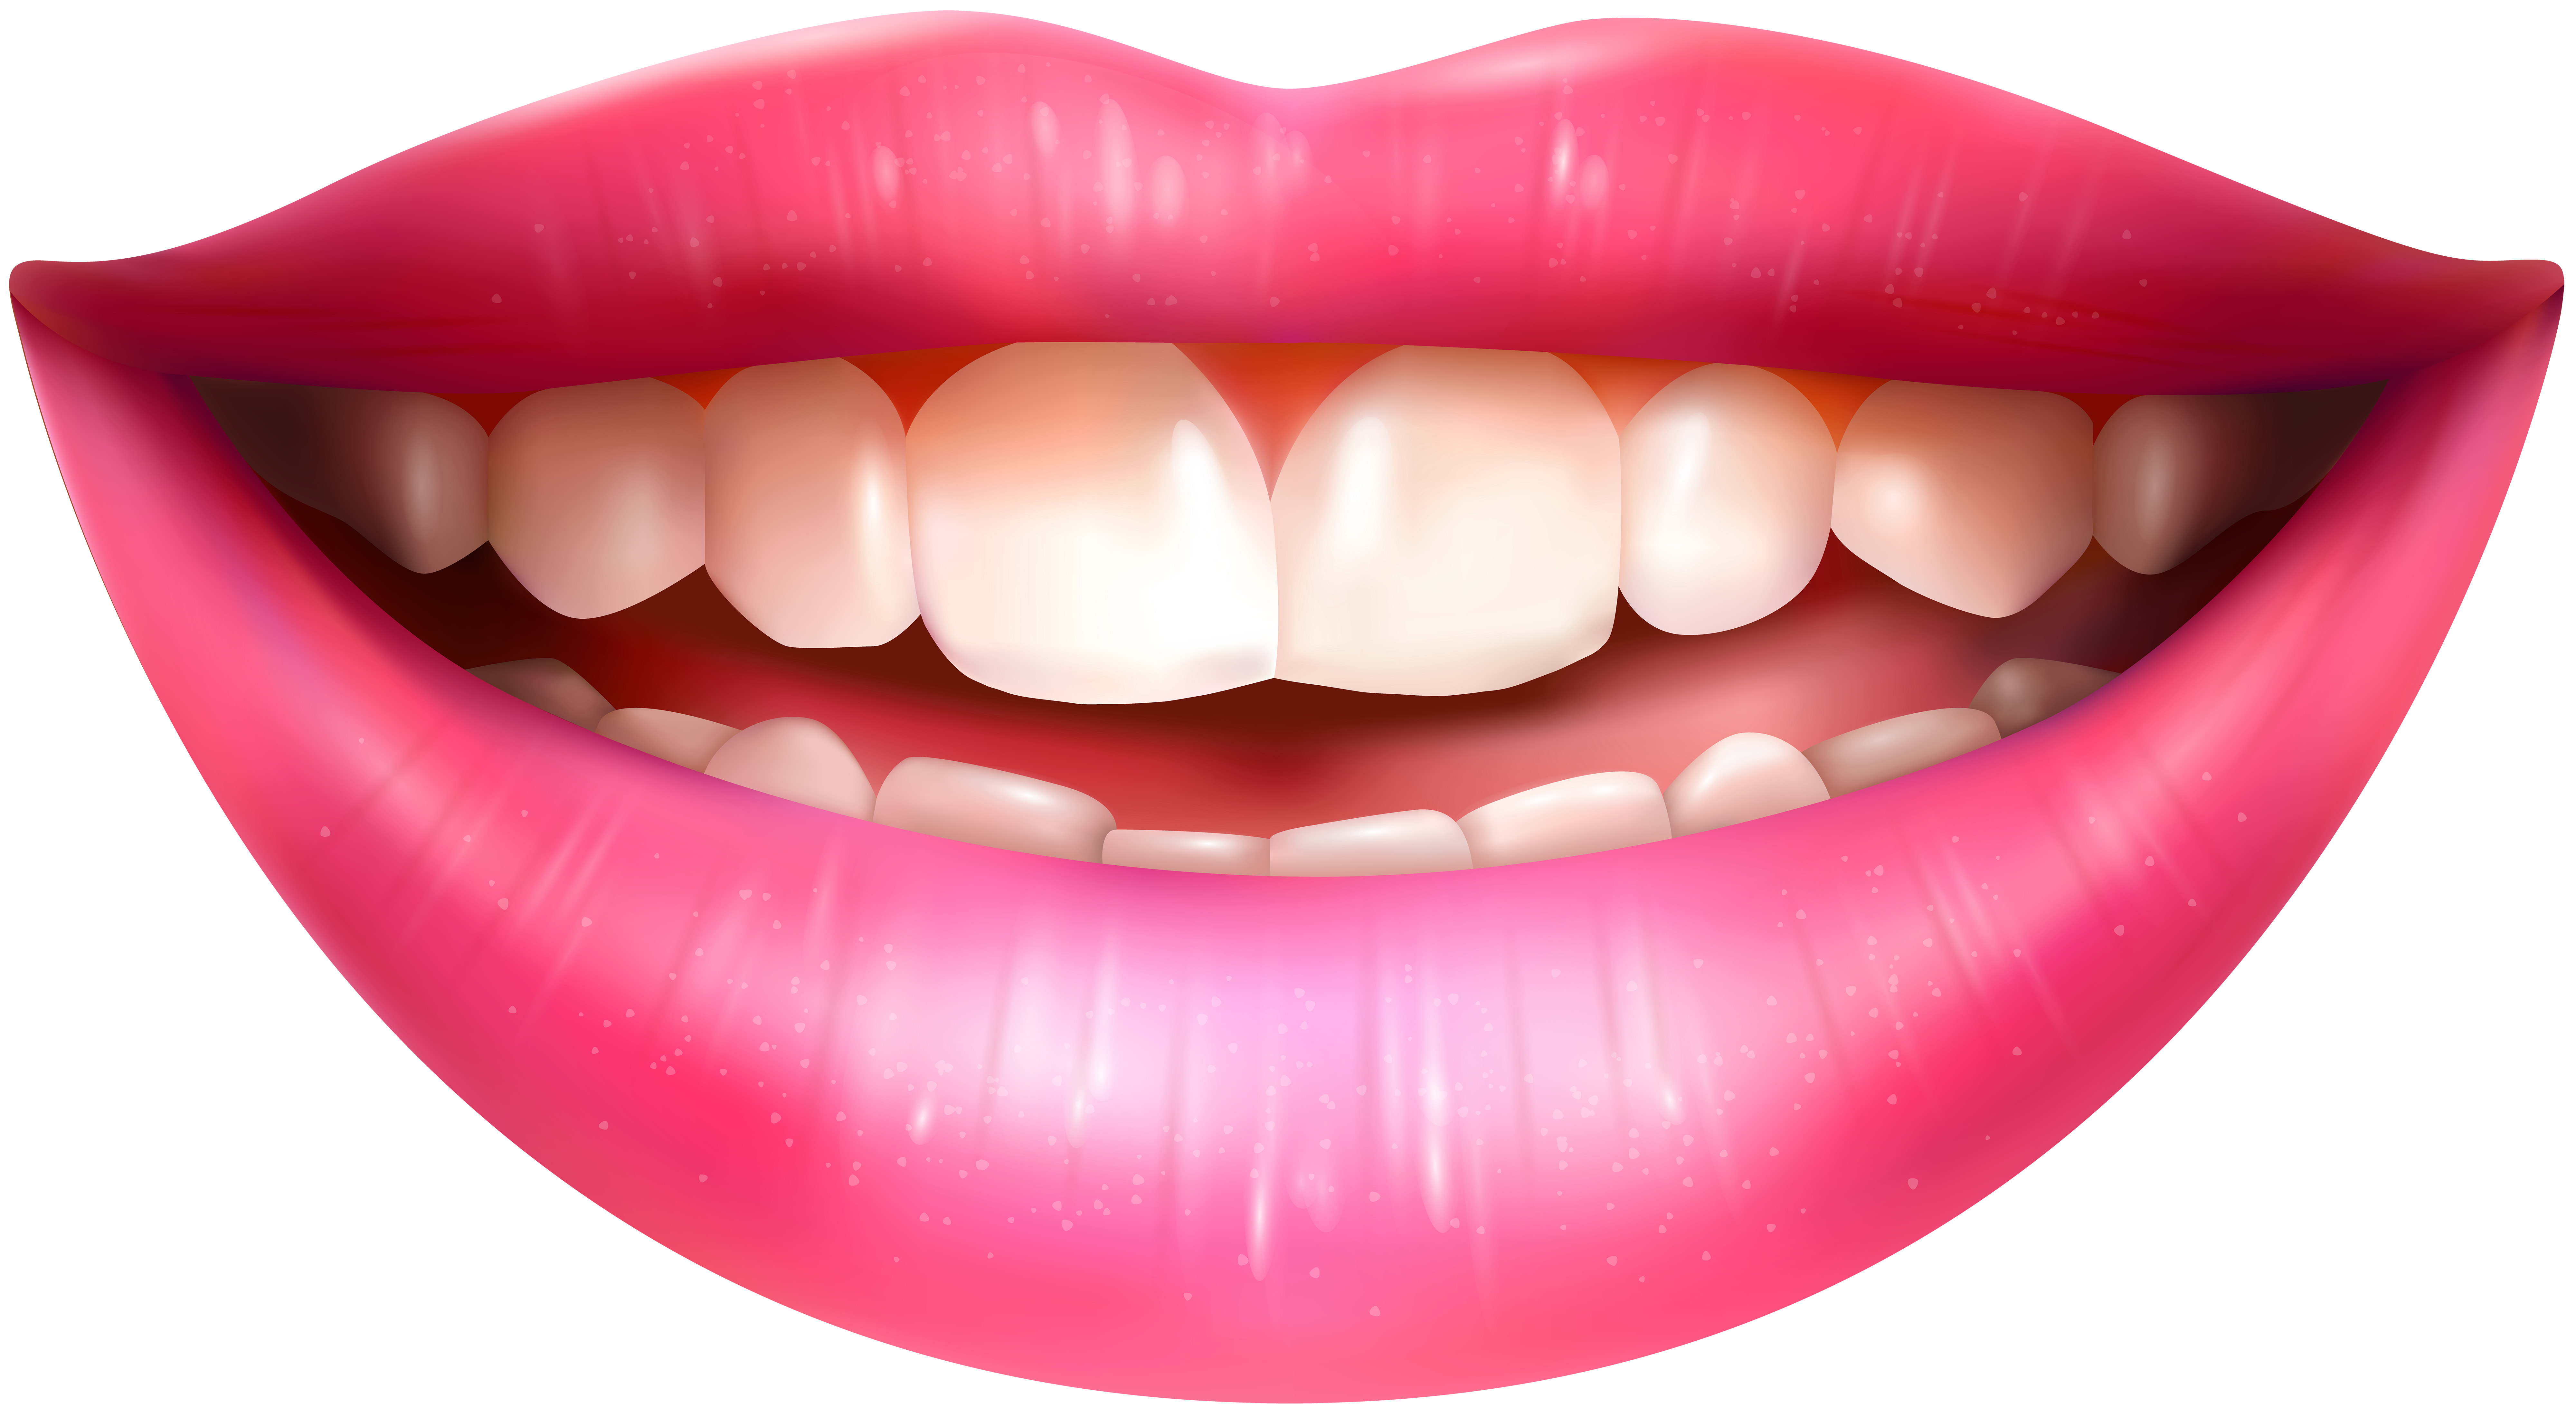 Human lips png. Smiling mouth clip art